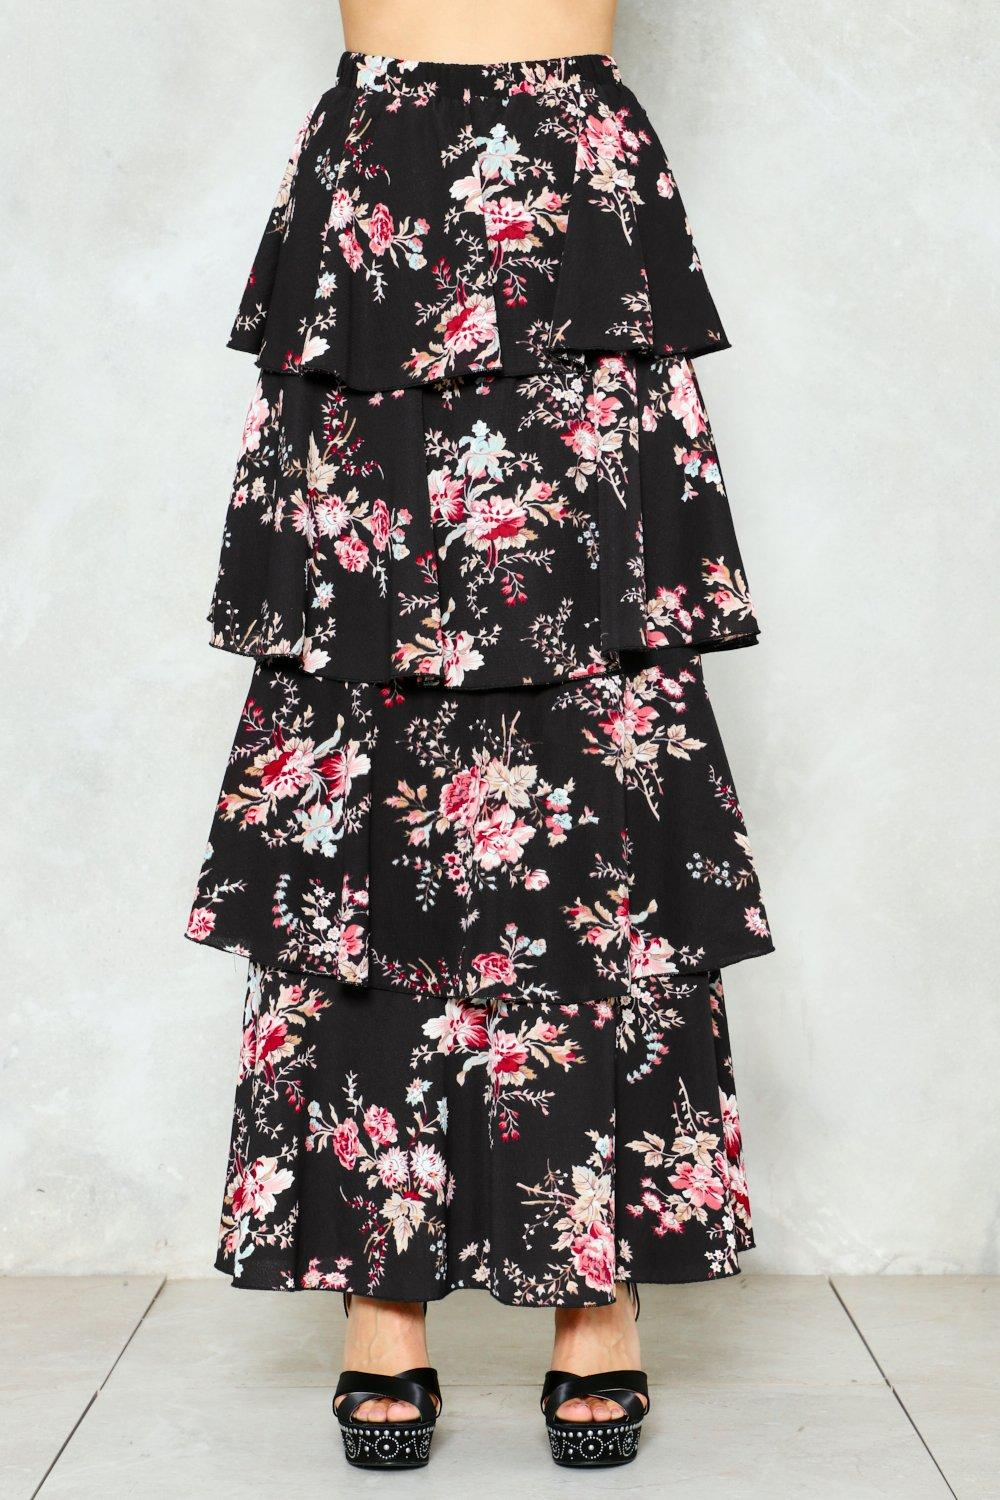 326e7a3e976 Womens Black Let the Tiers Fall Floral Maxi Skirt.